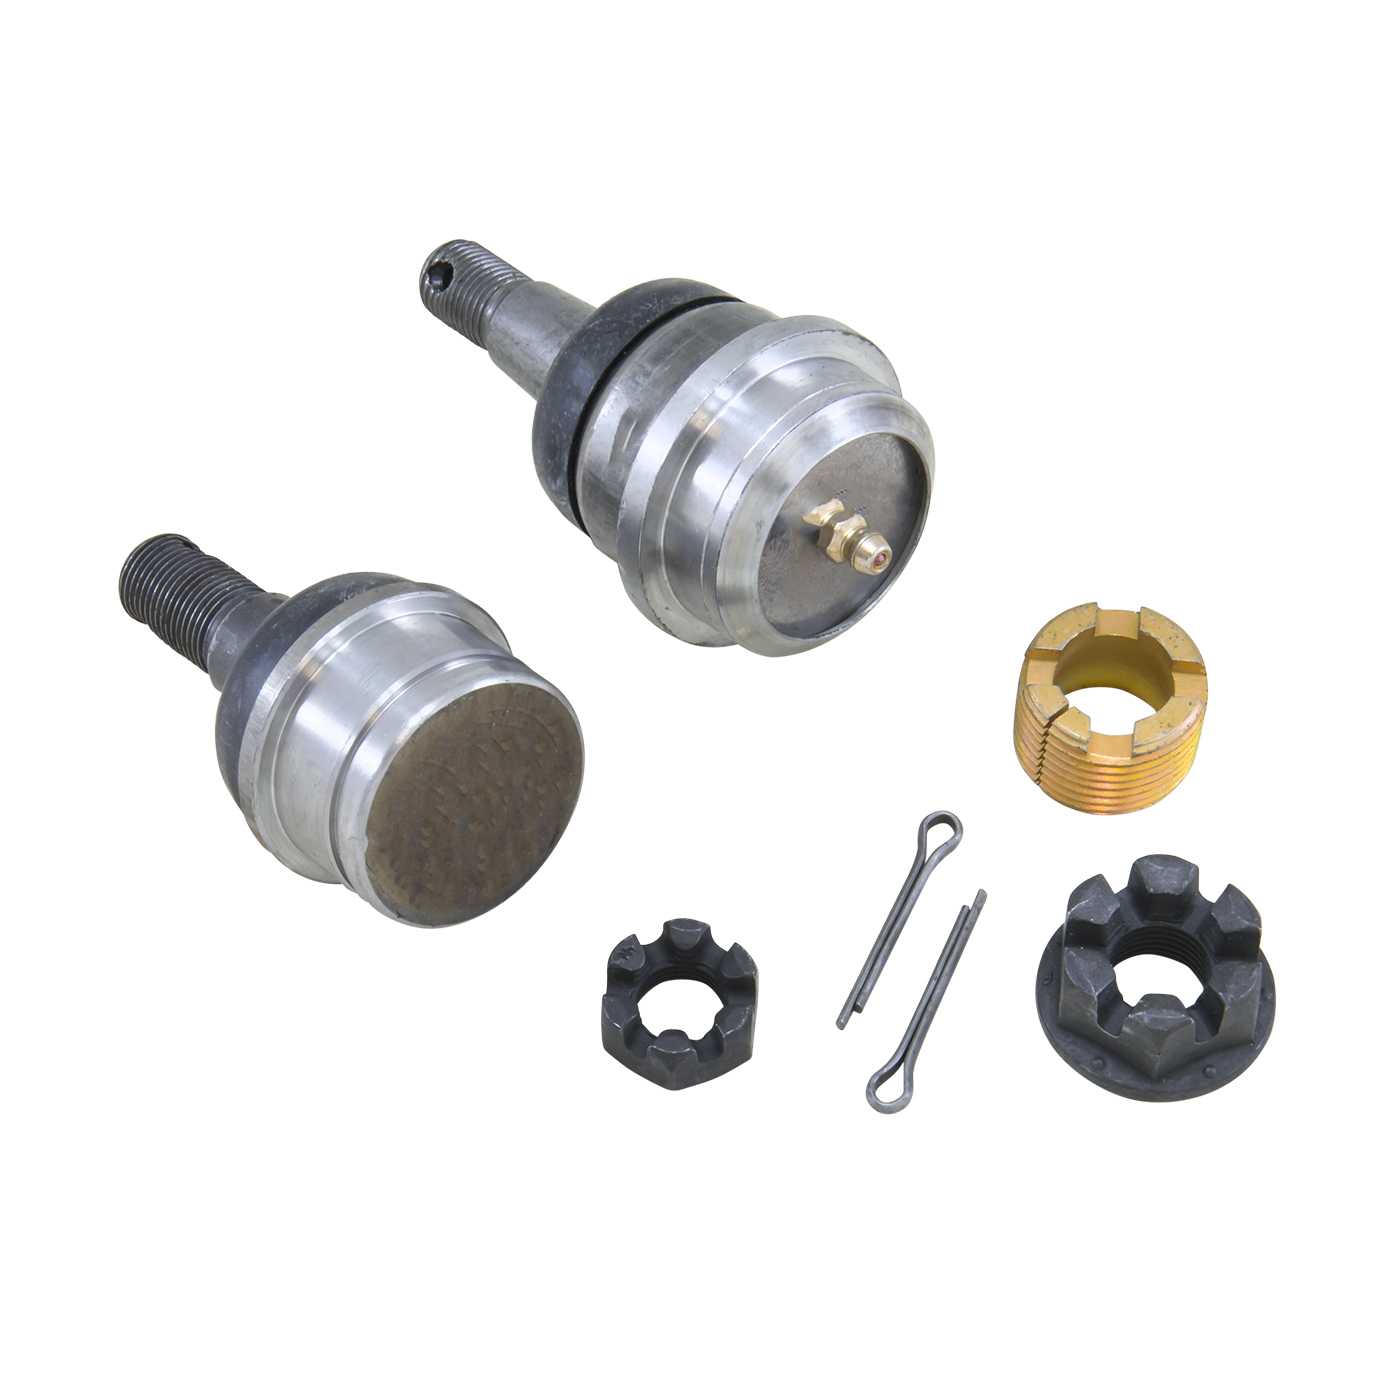 YSPBJ-012 - Ball joint kit for Dana 30, '85 & up, excluding CJ, one side